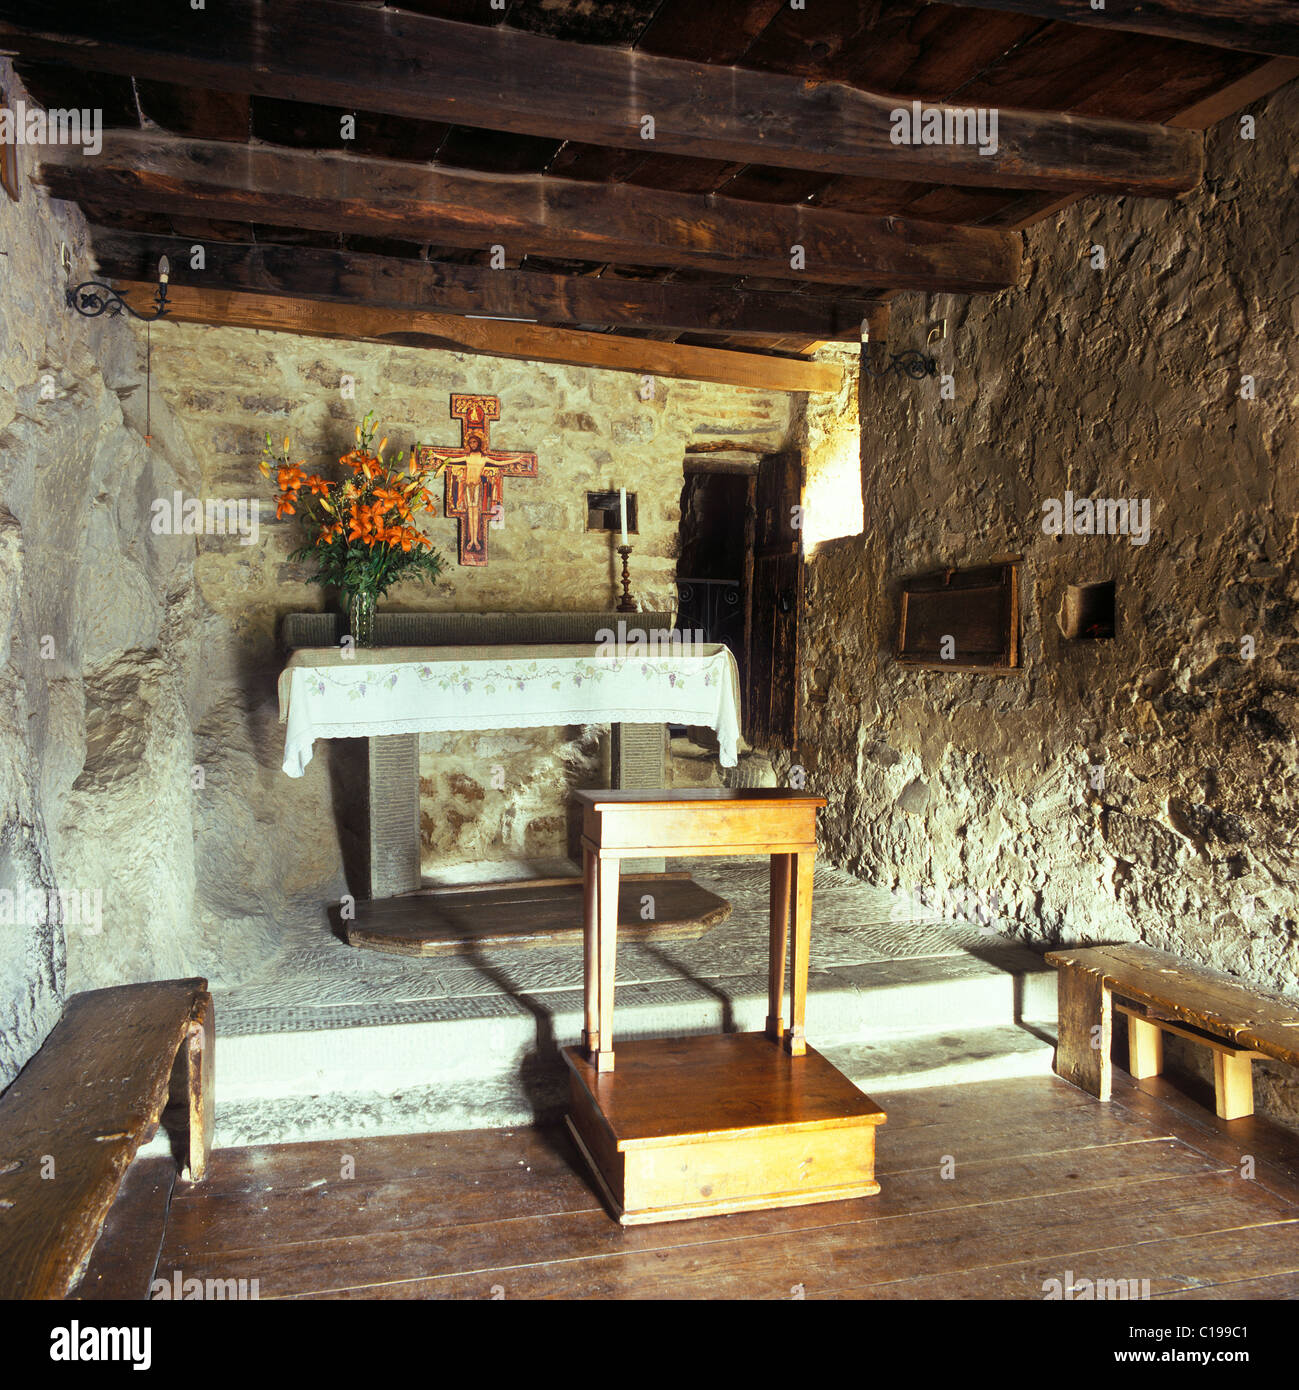 Cell of St Francis, his last resting place before his death, at the Convento delle Celle, a monastery of the order - Stock Image